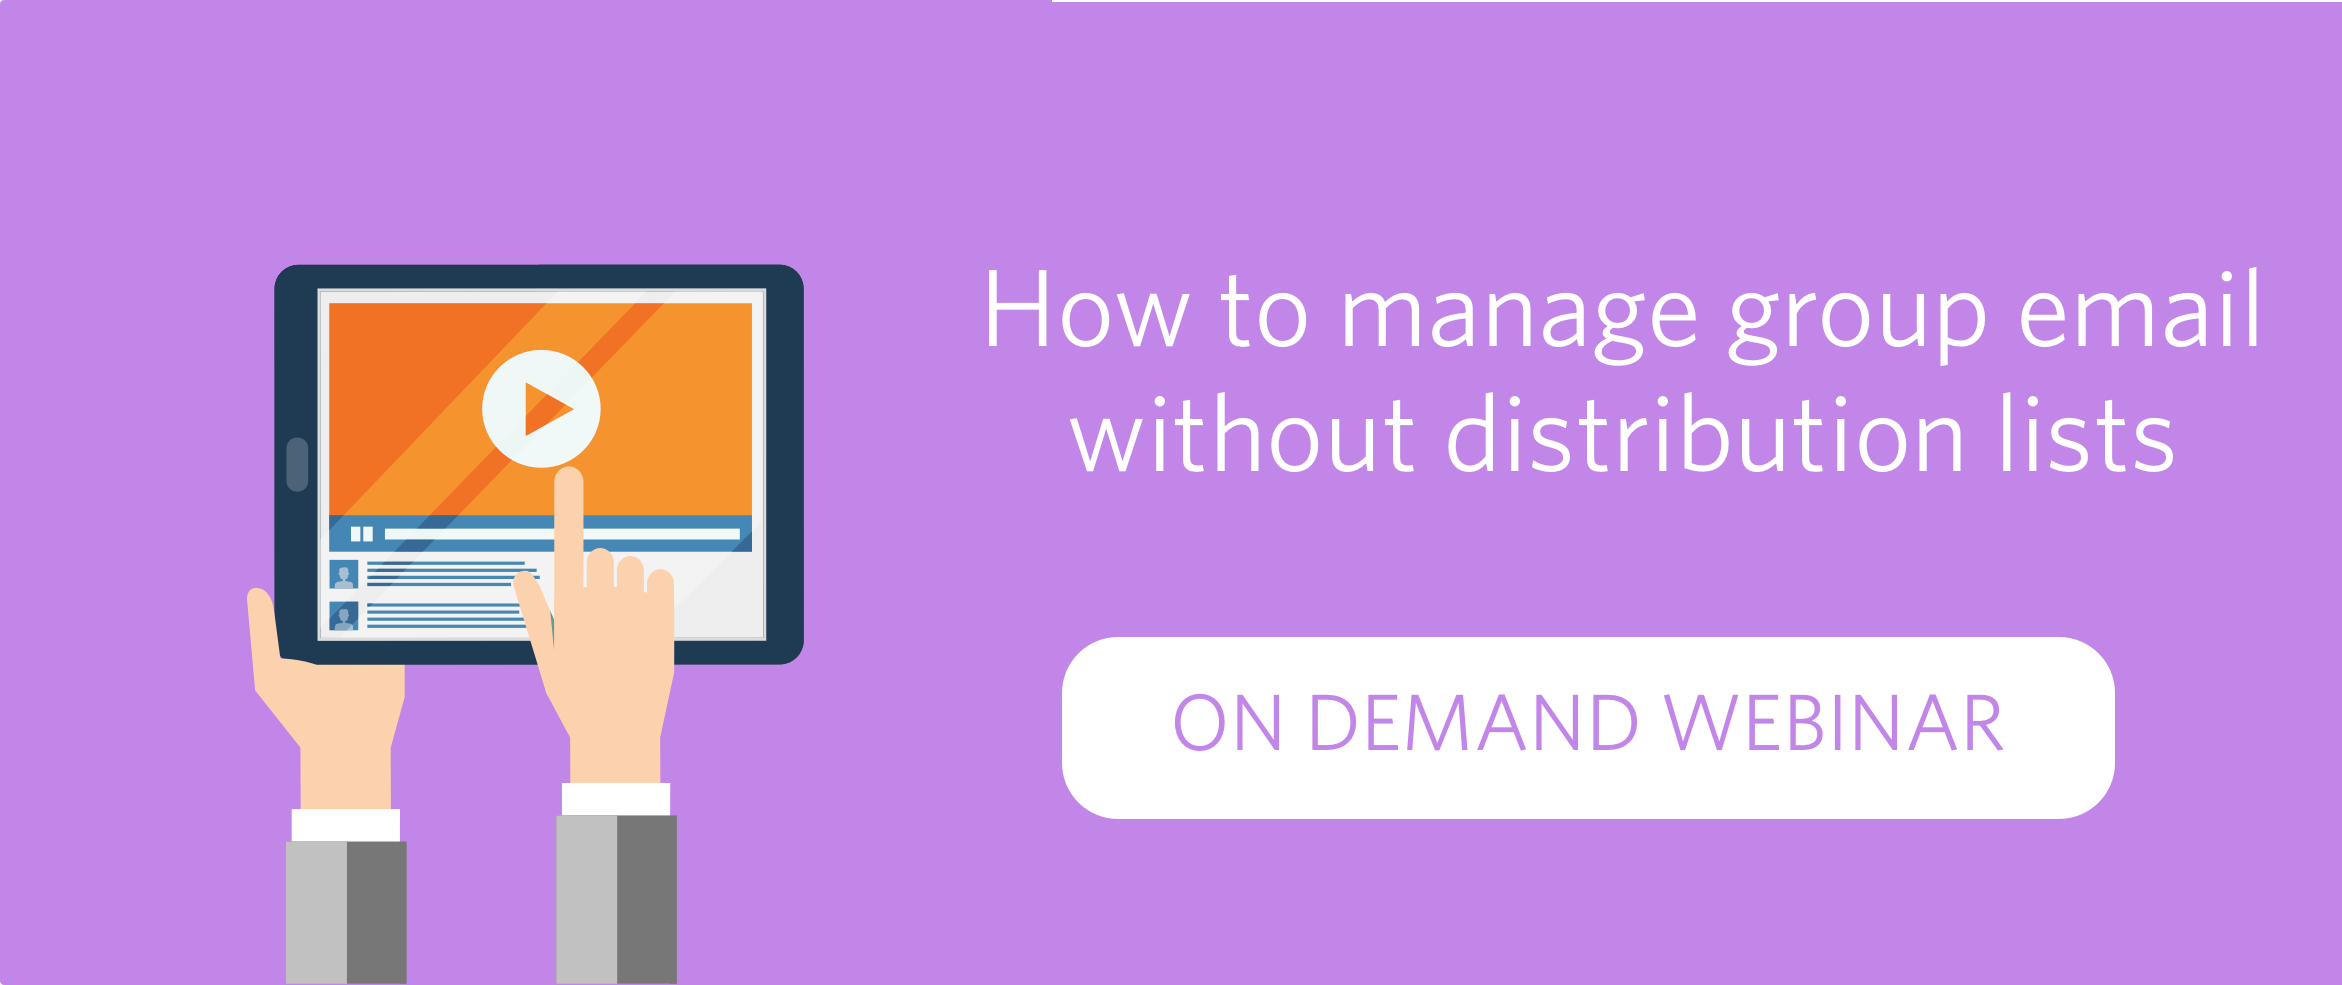 How to manage group emails without distribution lists - The